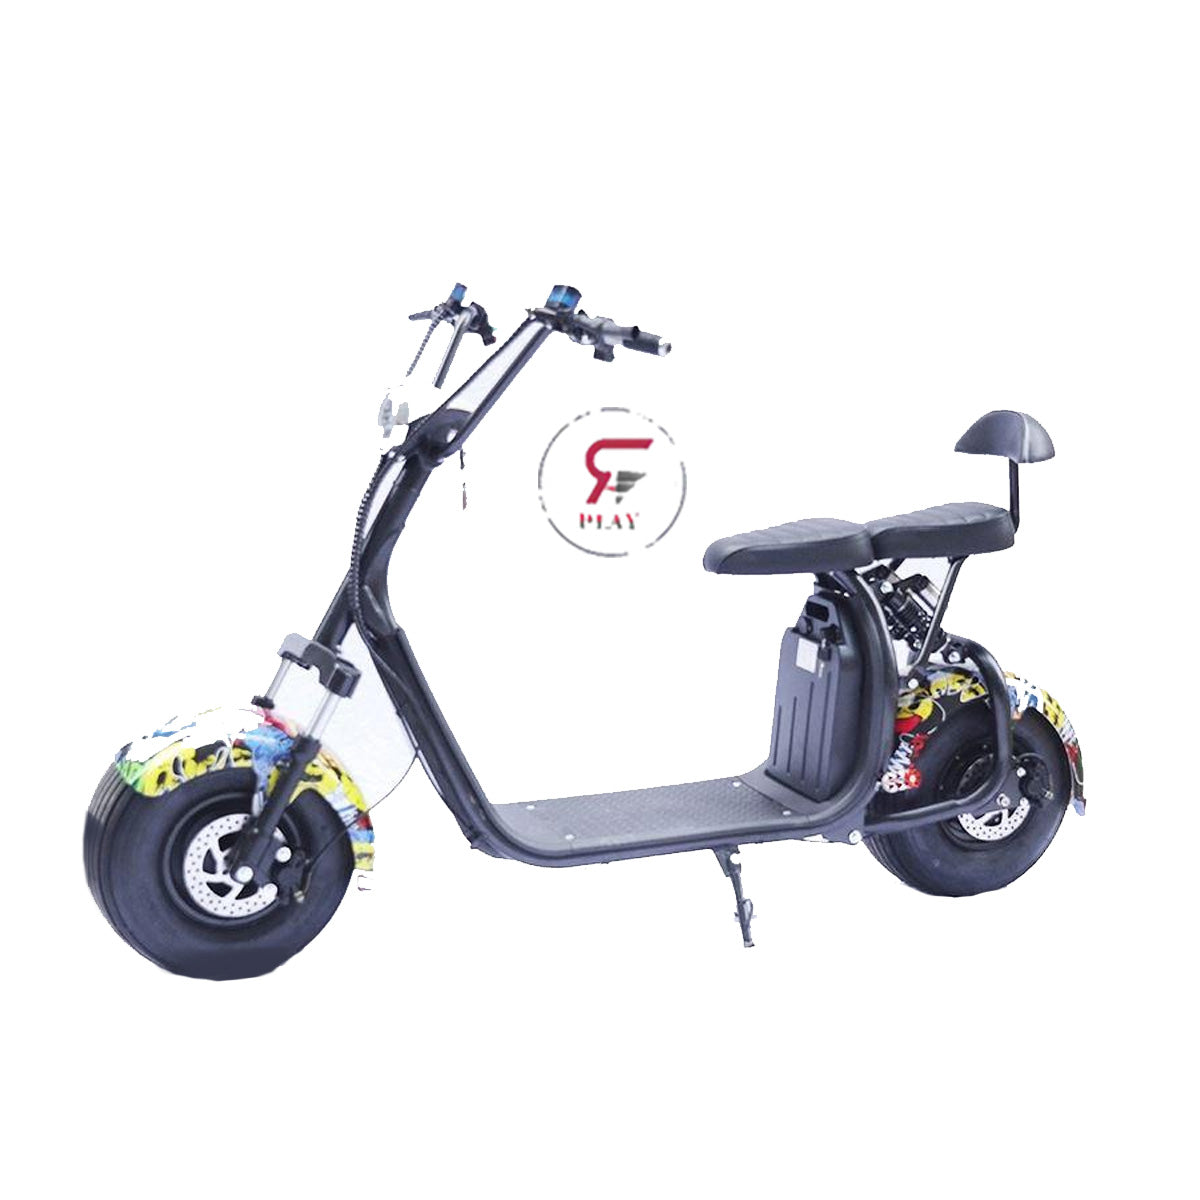 COCO HARLEY STATION SCOOTER WITH 60 V  REMOVABLE BATTERY - GRAFFITI - Rafplay